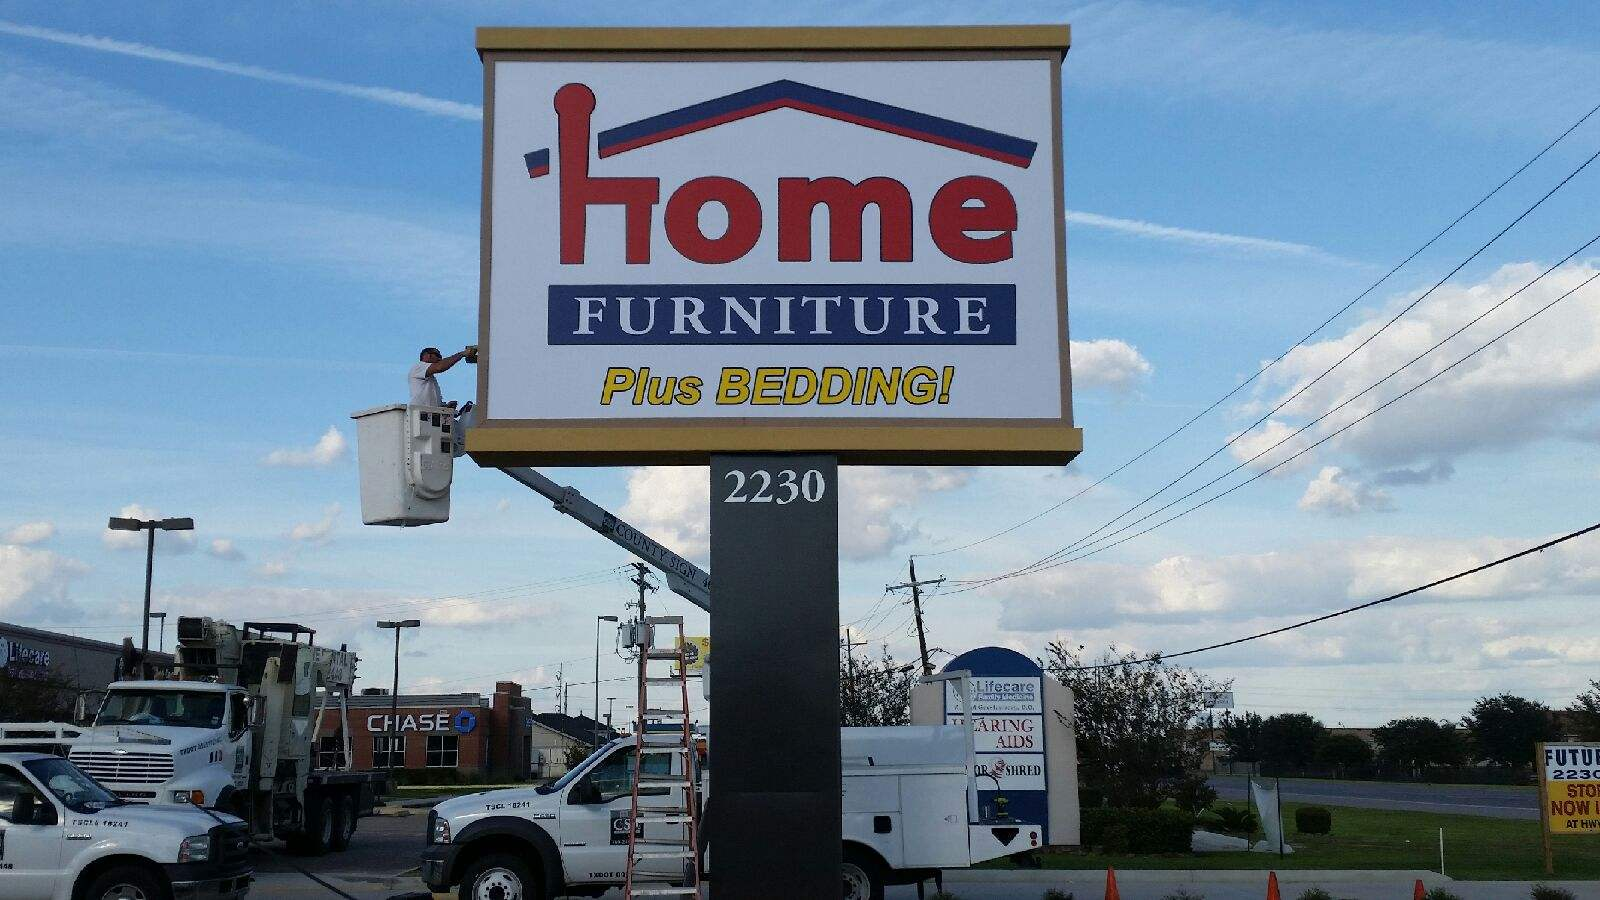 Home Furniture - I.D. Pole Sig